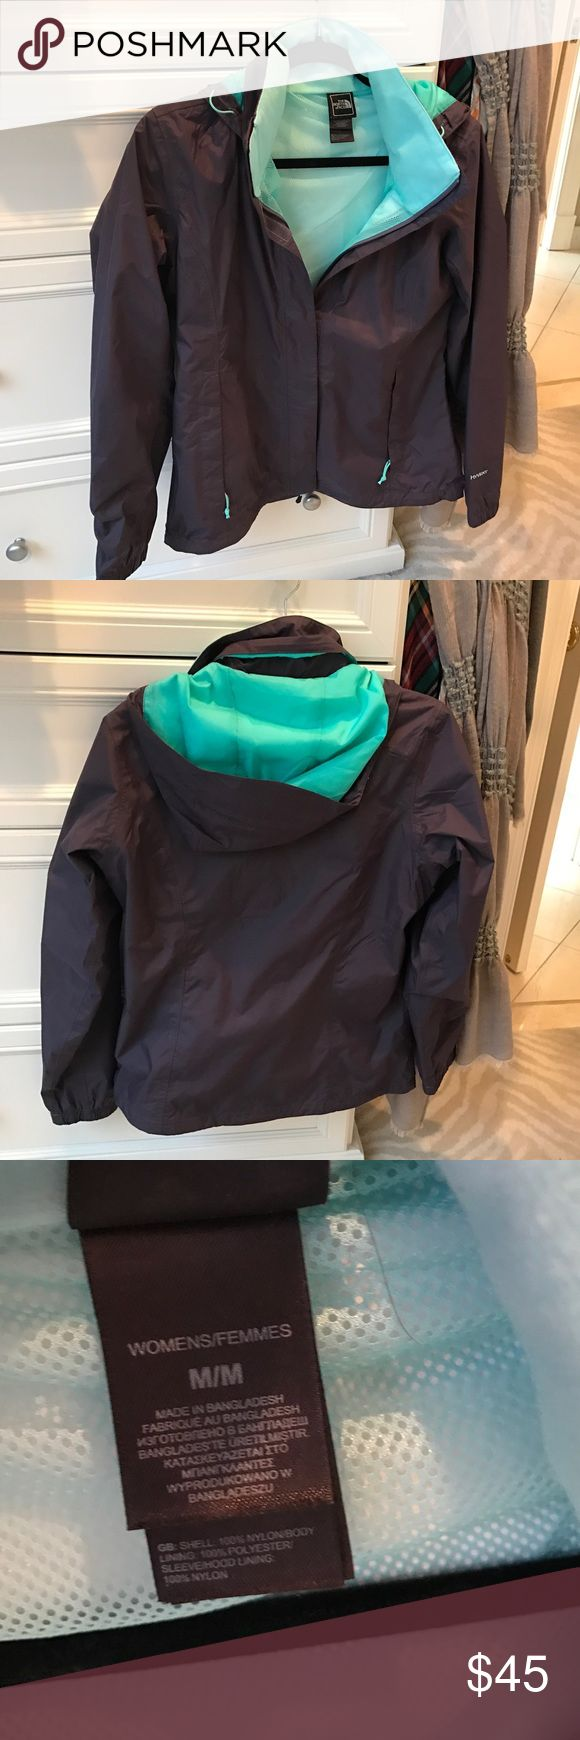 The North Face Women's Rain Jacket Excellent Condition, no stains or flaws, charcoal grey and green The North Face Jackets & Coats